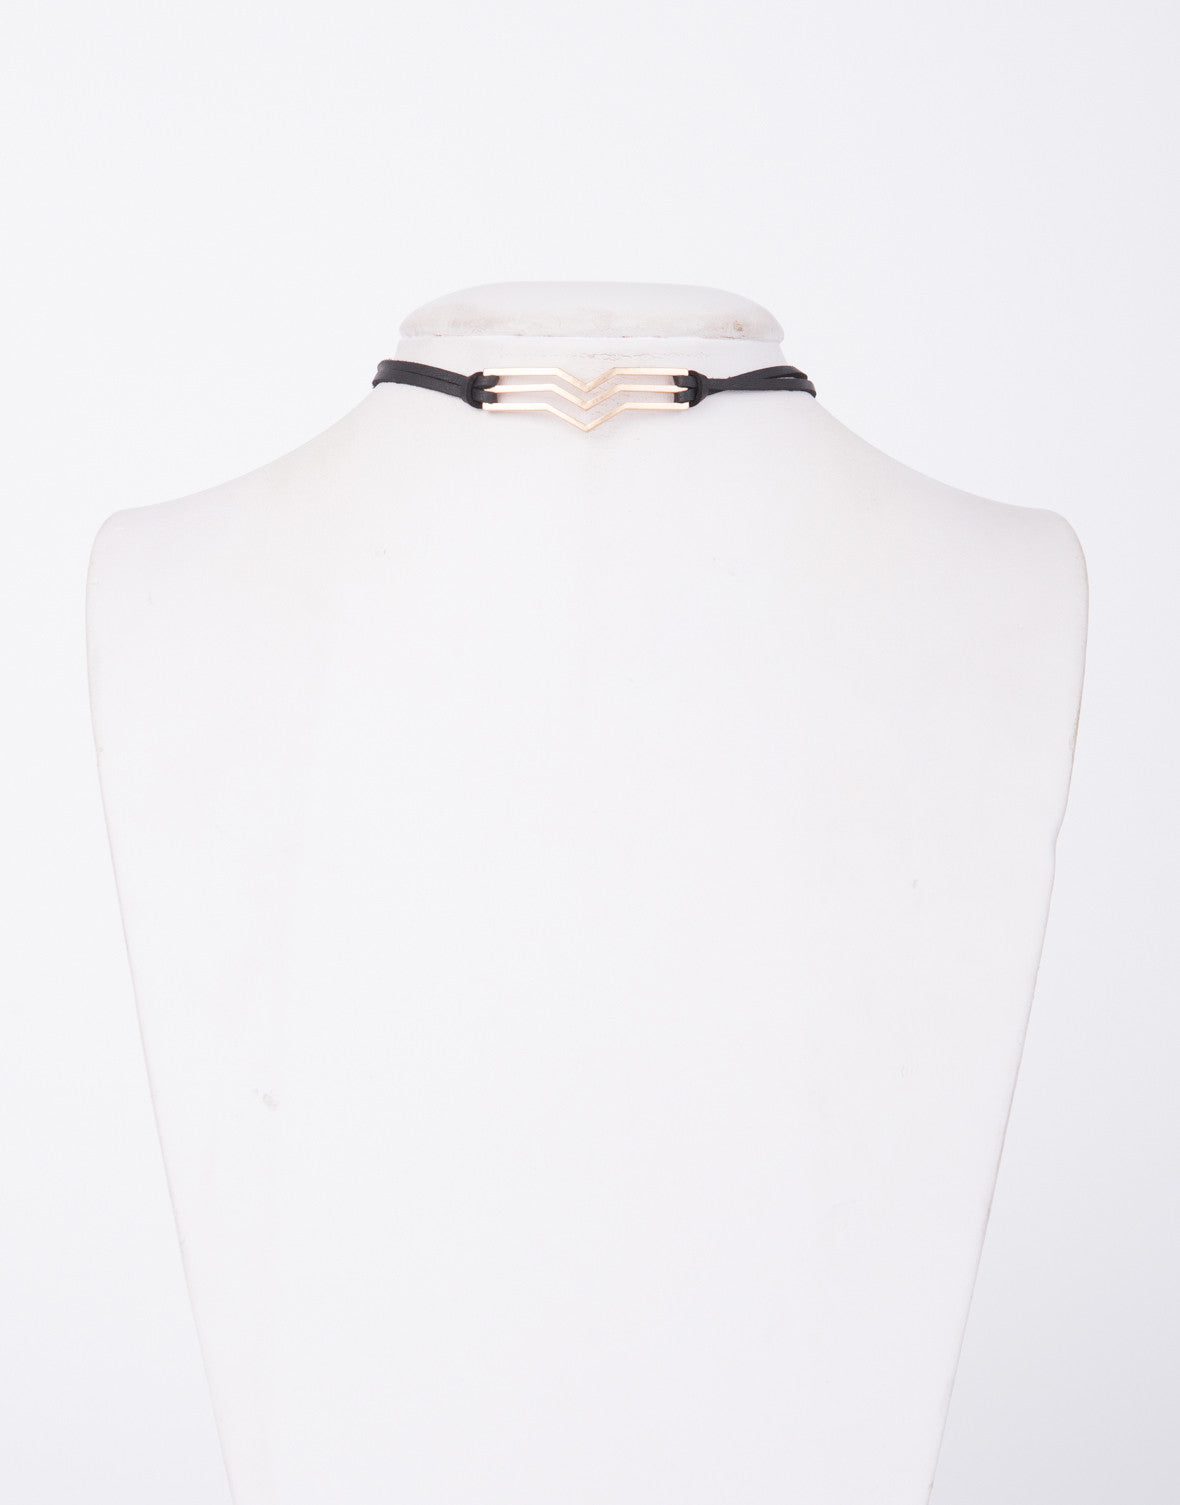 Chevron Arrow Choker